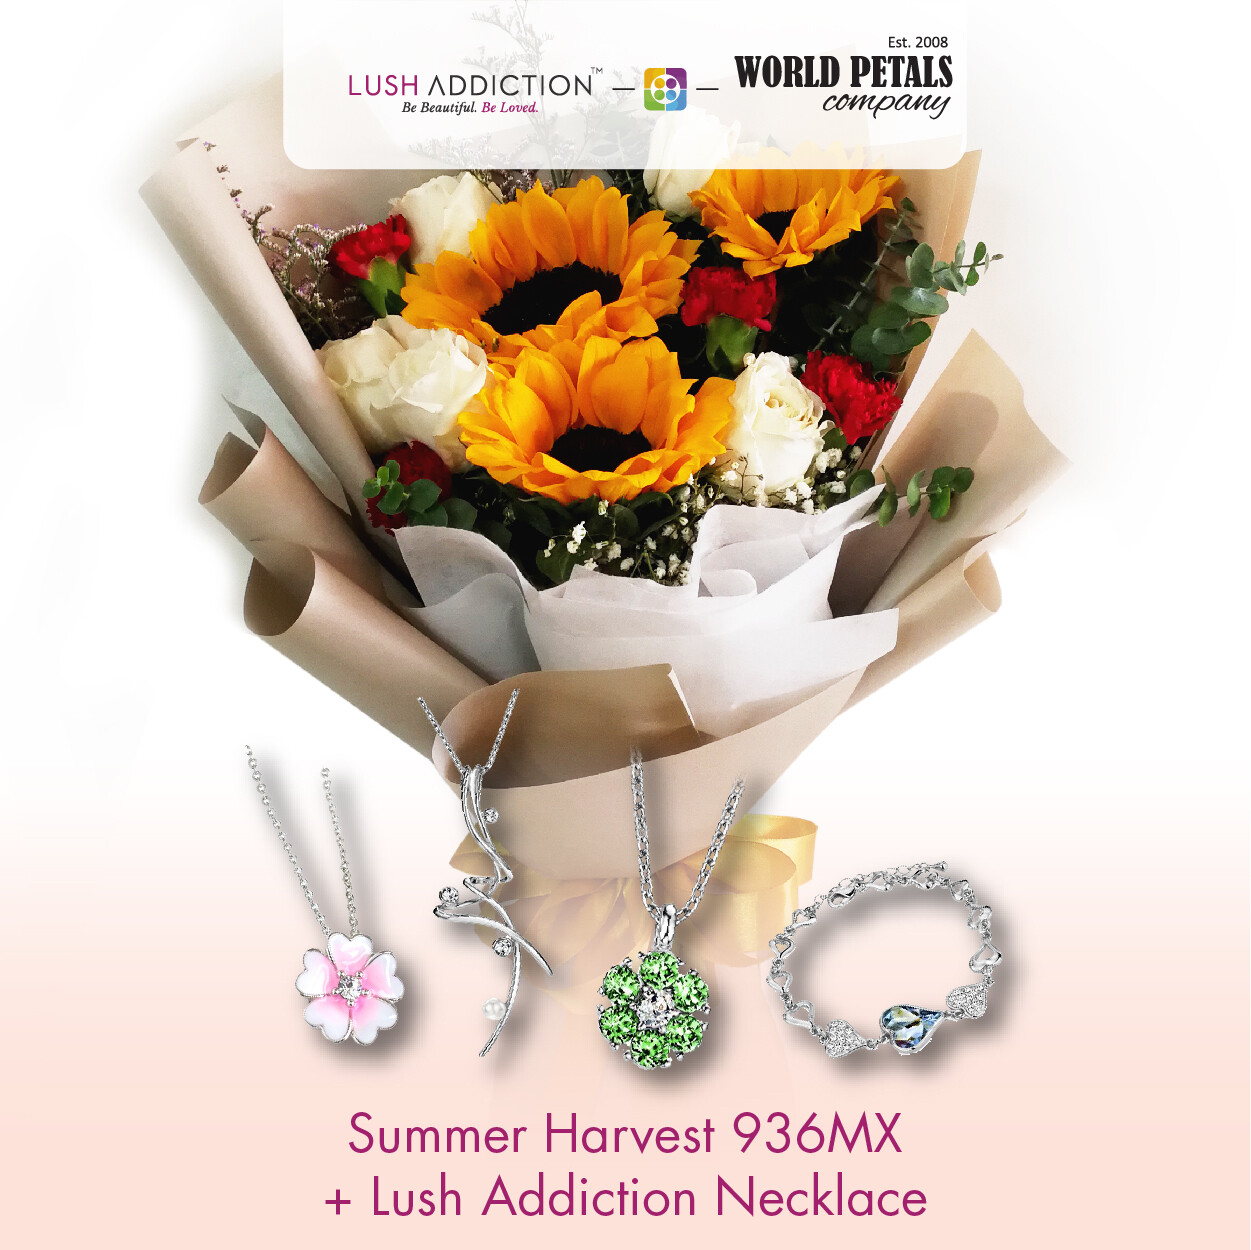 Summer Harvest + Lush Addiction Necklace (By: World Petals Florist from KL)